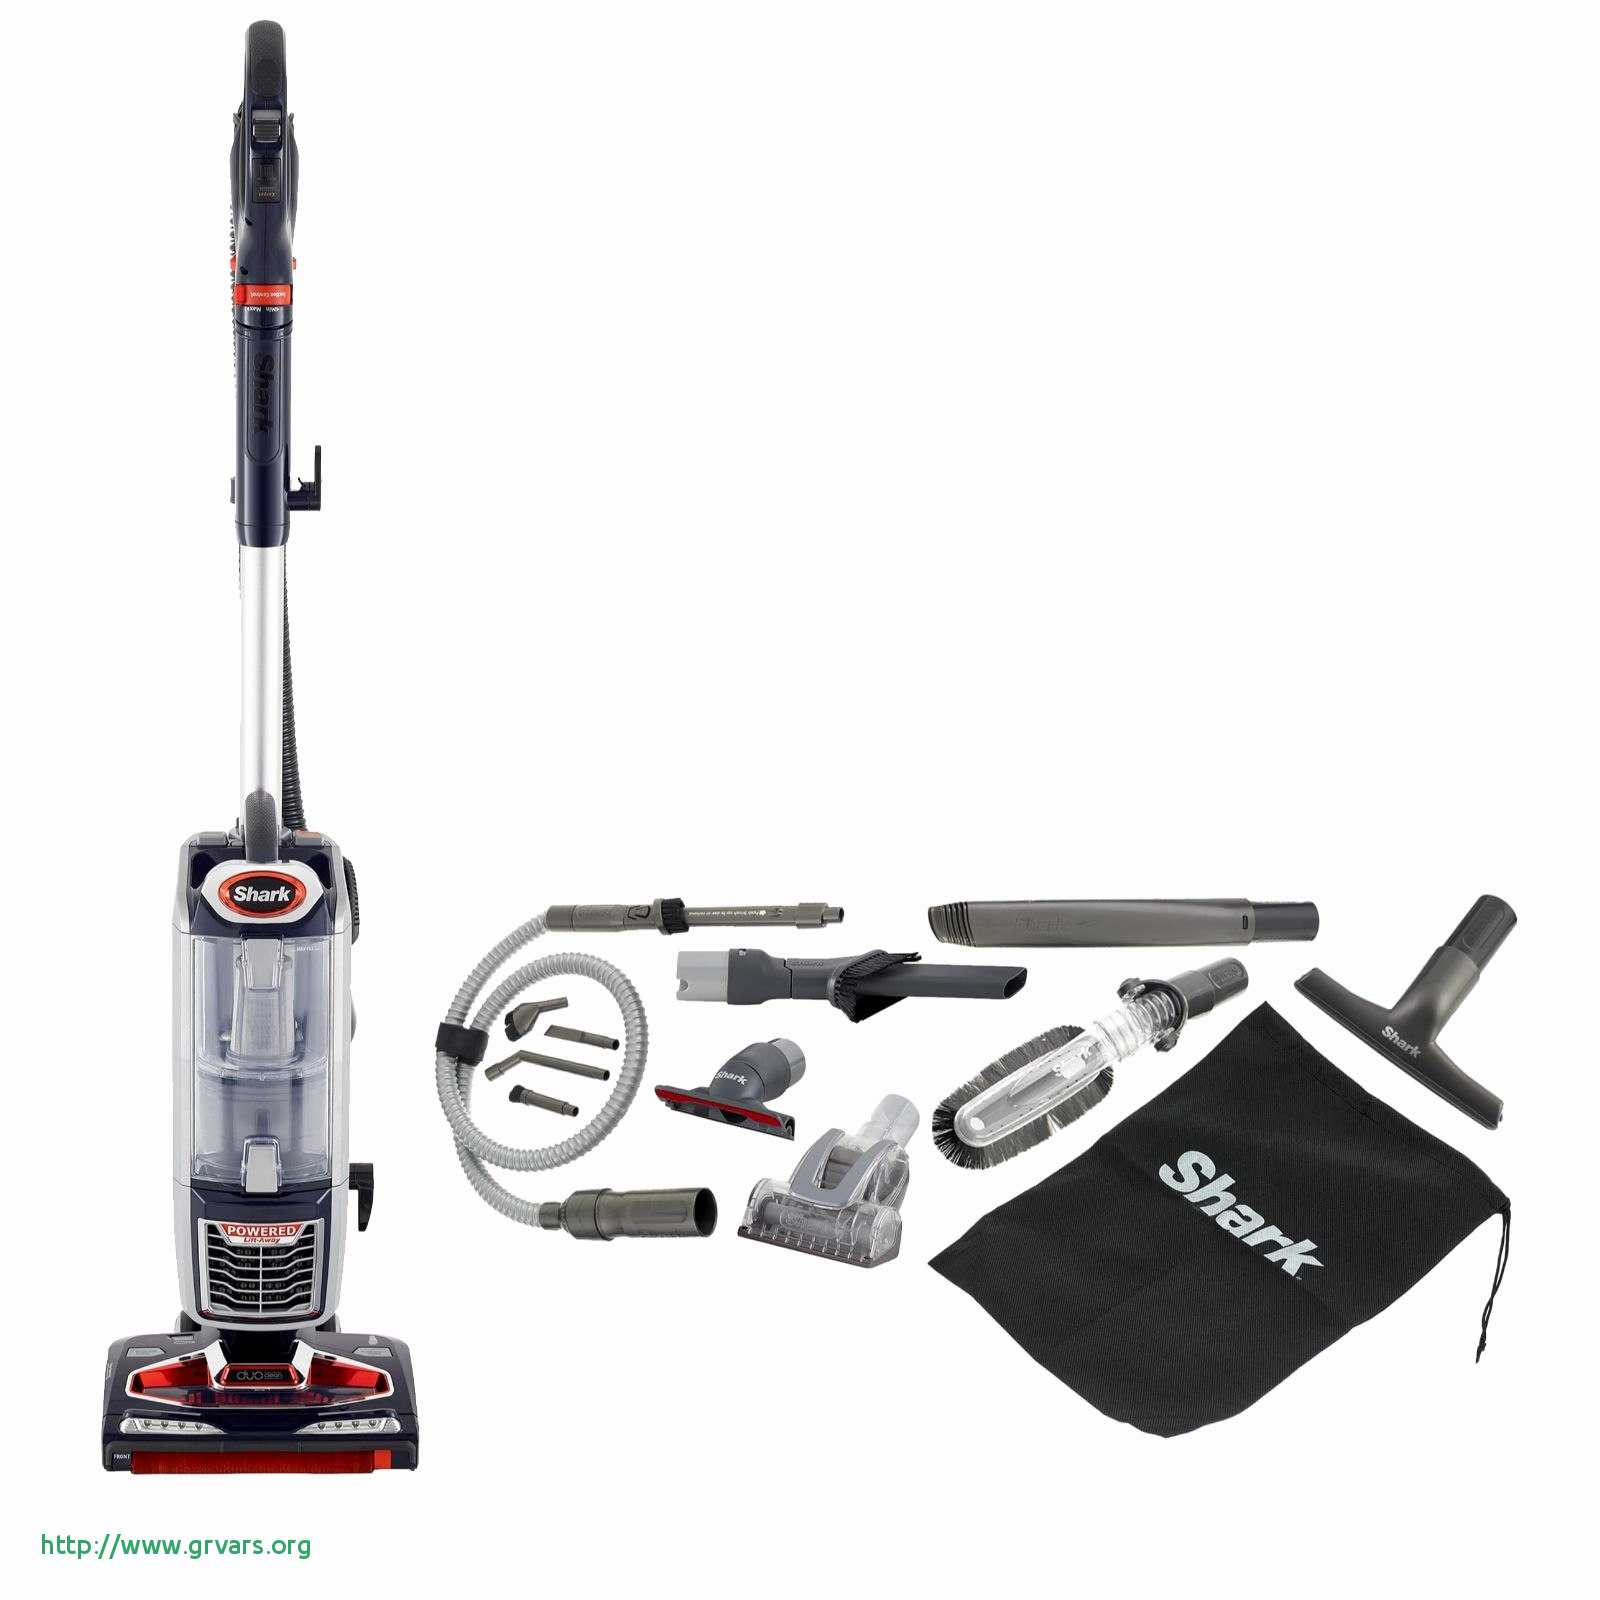 best hardwood steam floor cleaners consumer reports of 15 inspirant best vaccum for hardwood floors ideas blog with best bagless vacuum for hardwood floors unique 50 fresh best vacuum for hardwood floors and pets